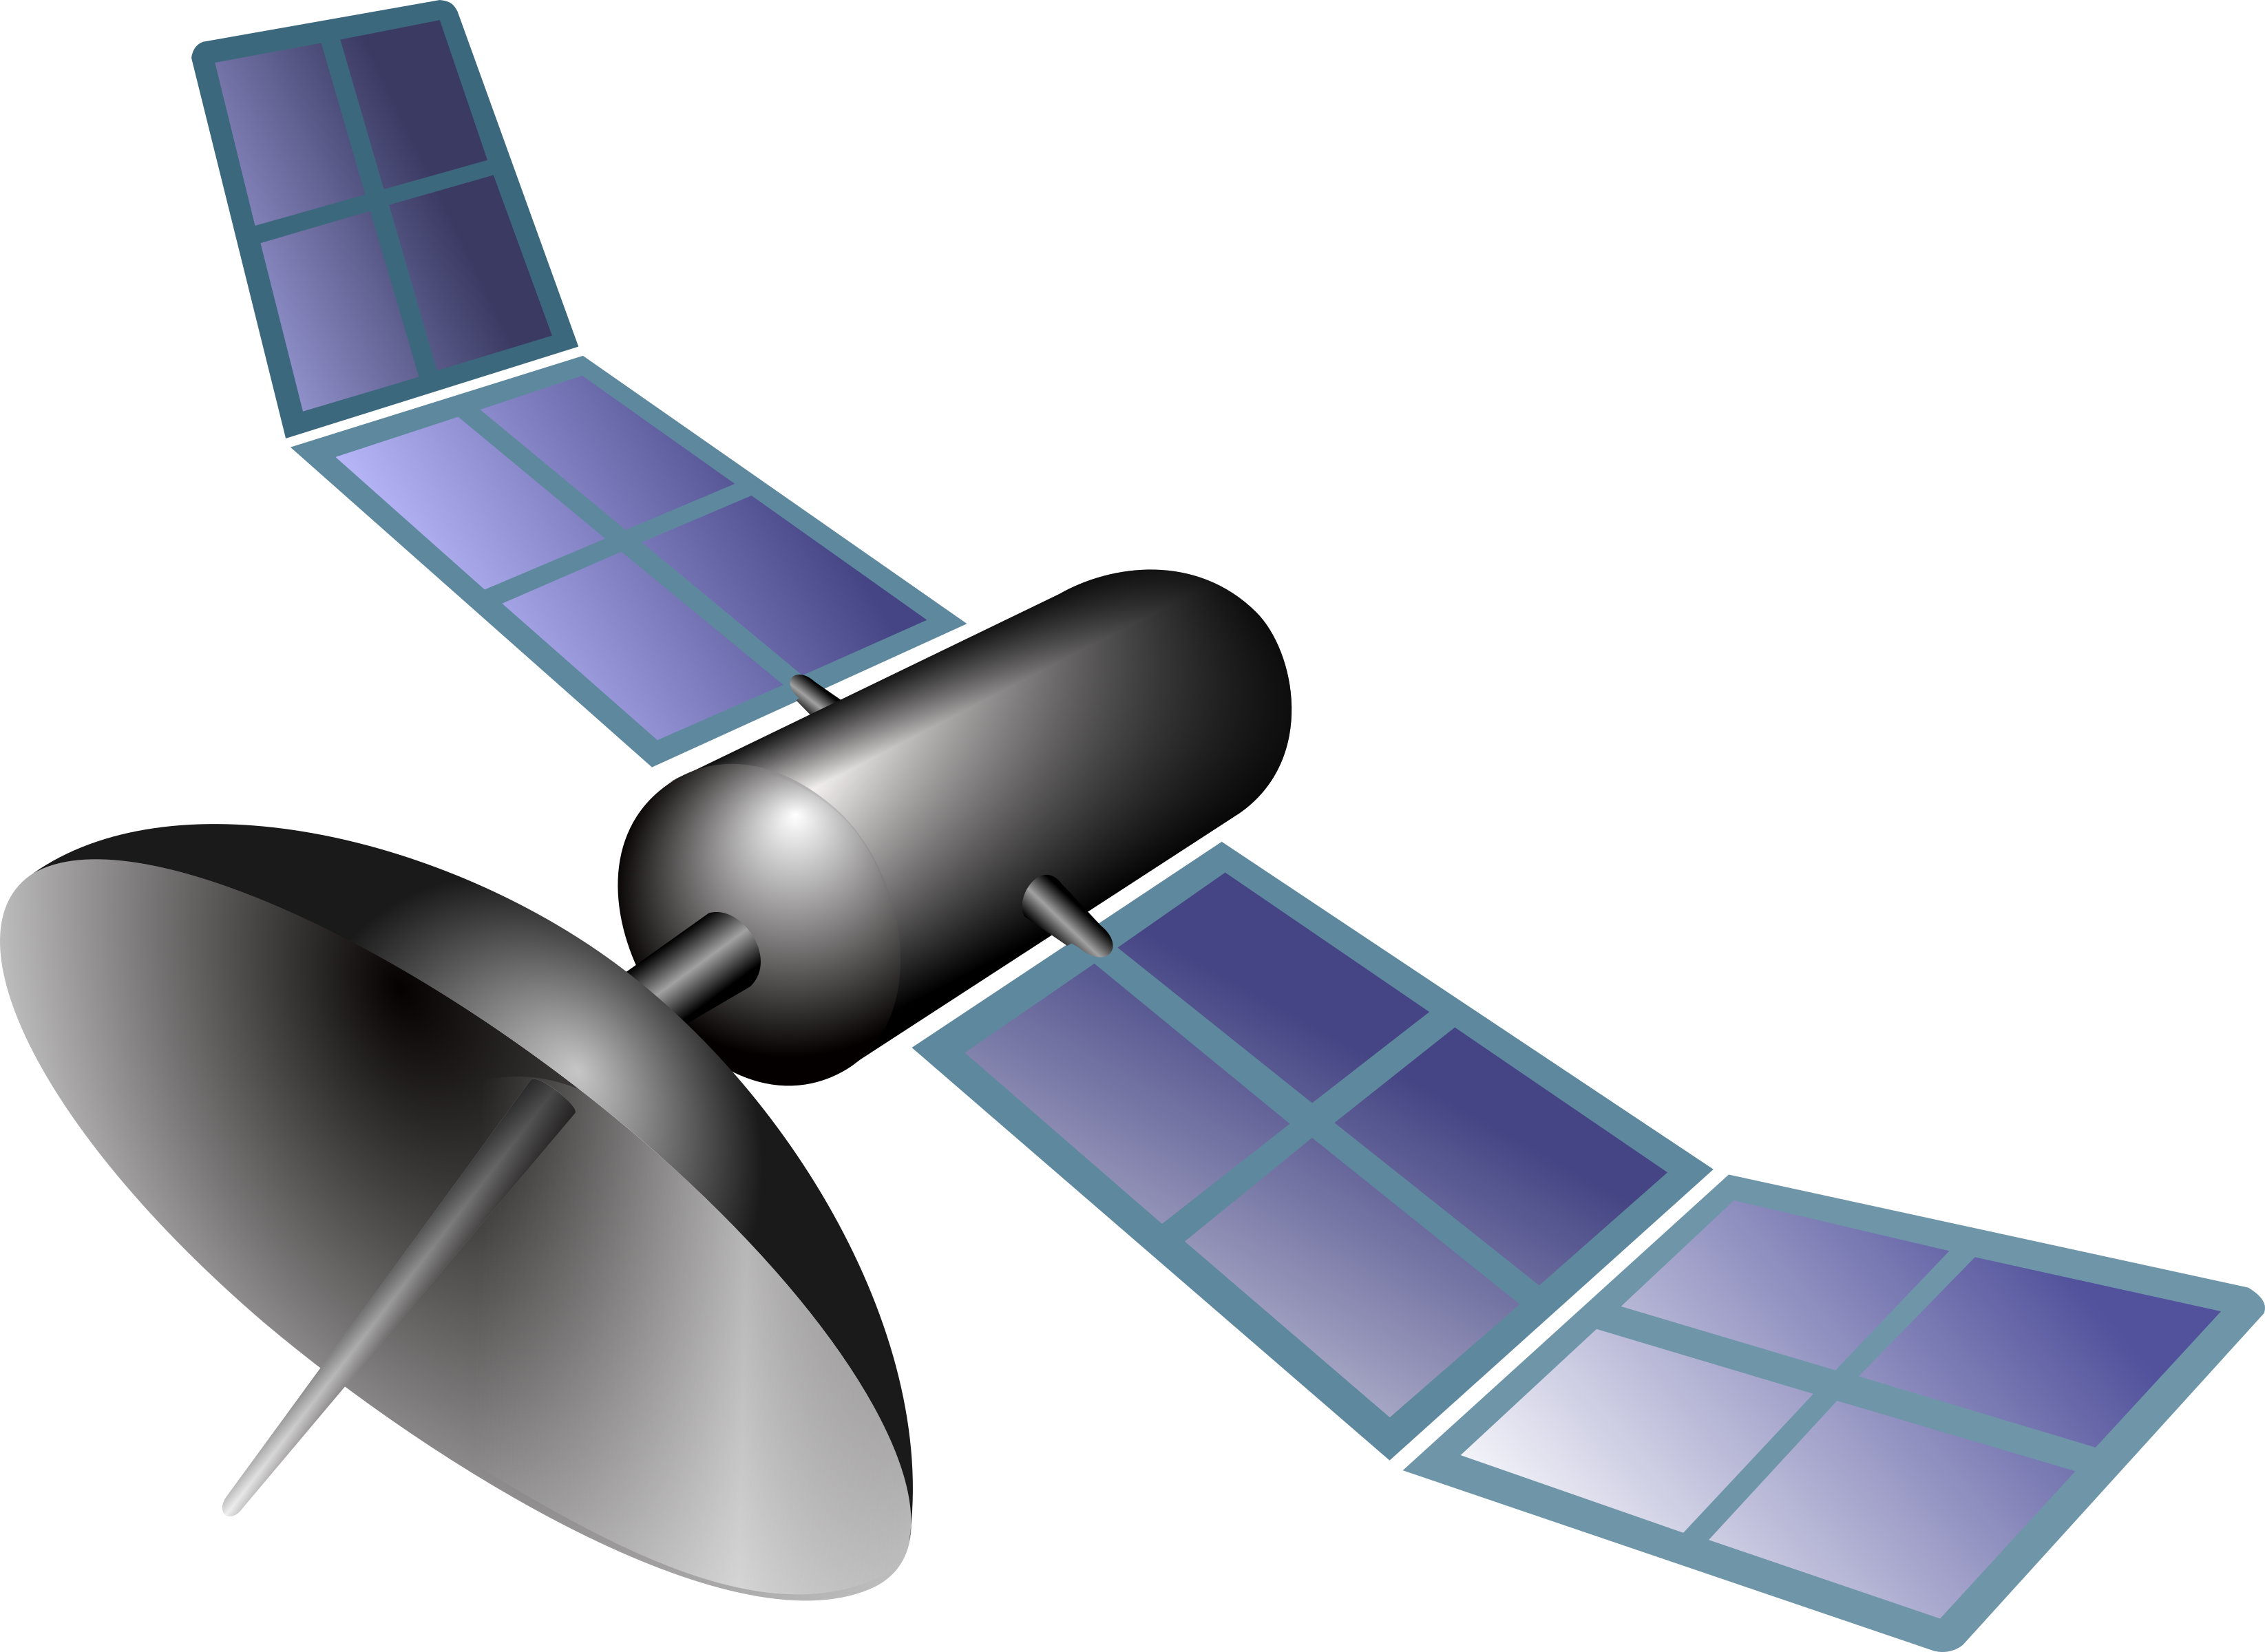 Satellite clipart space technology. Icons png free and